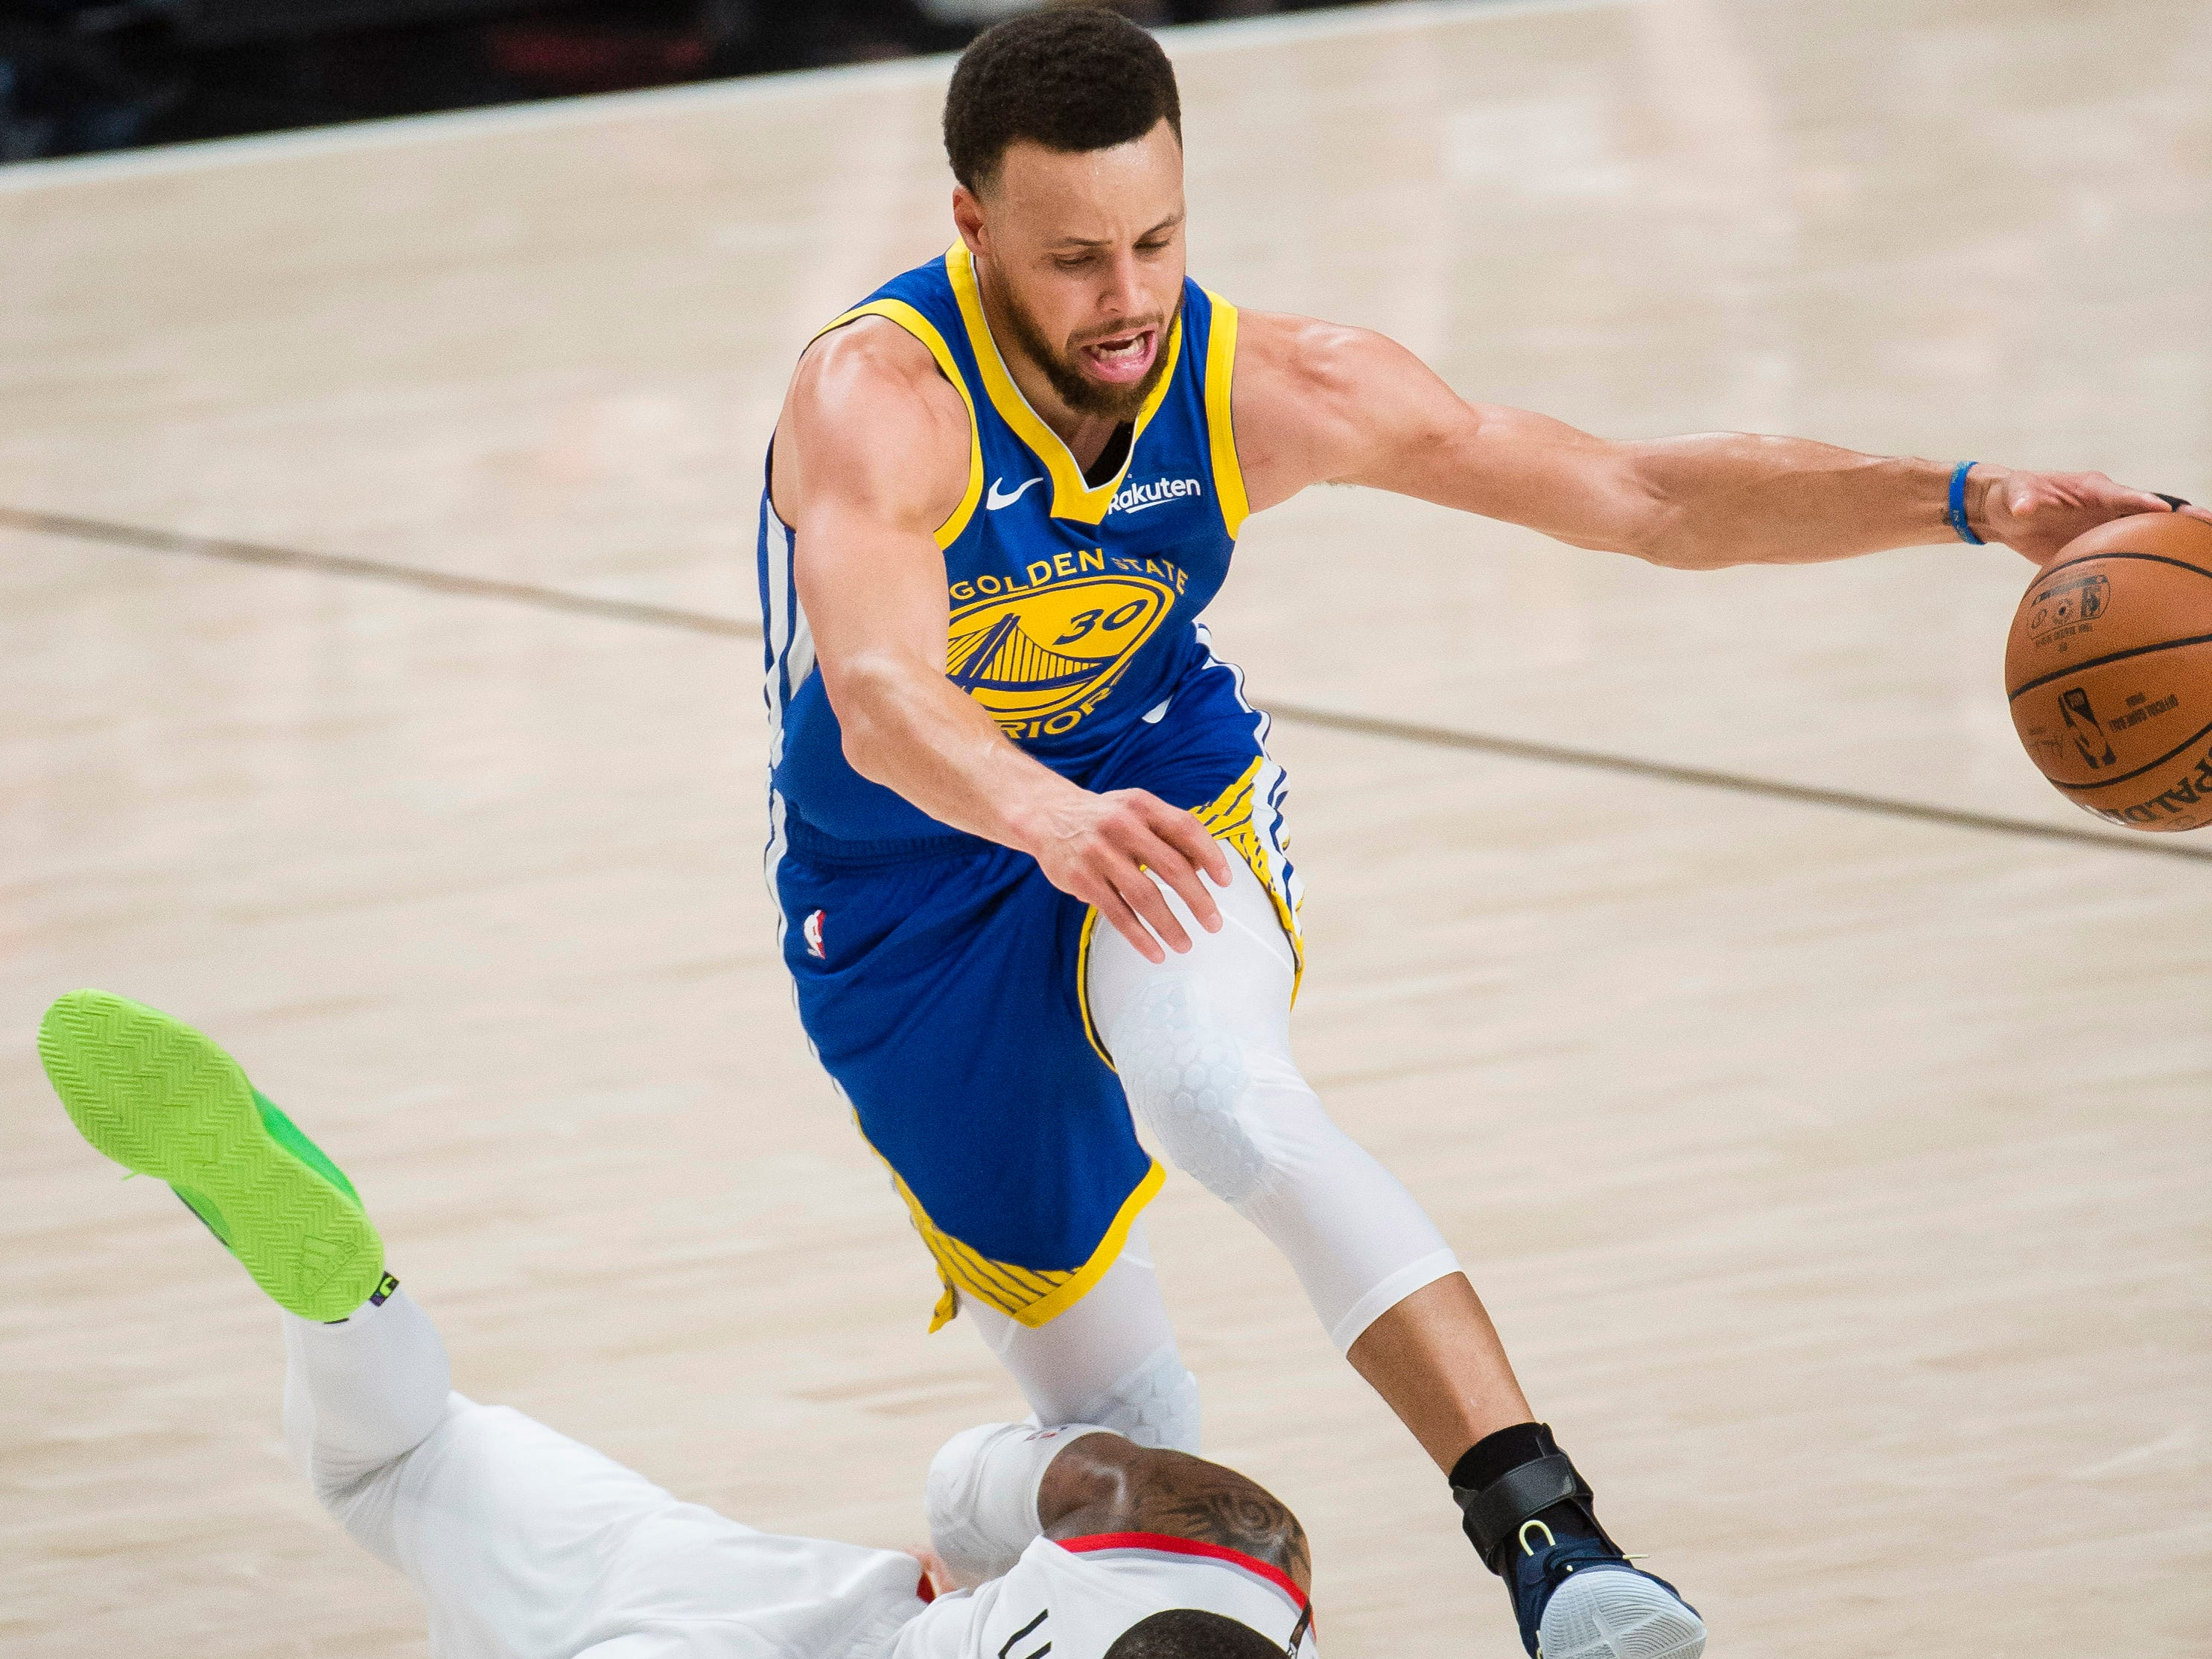 May 18: Warriors guard Stephen Curry (30) dribbles over fallen Blazers defender Damian Lillard (0) during Game 3 in Portland.